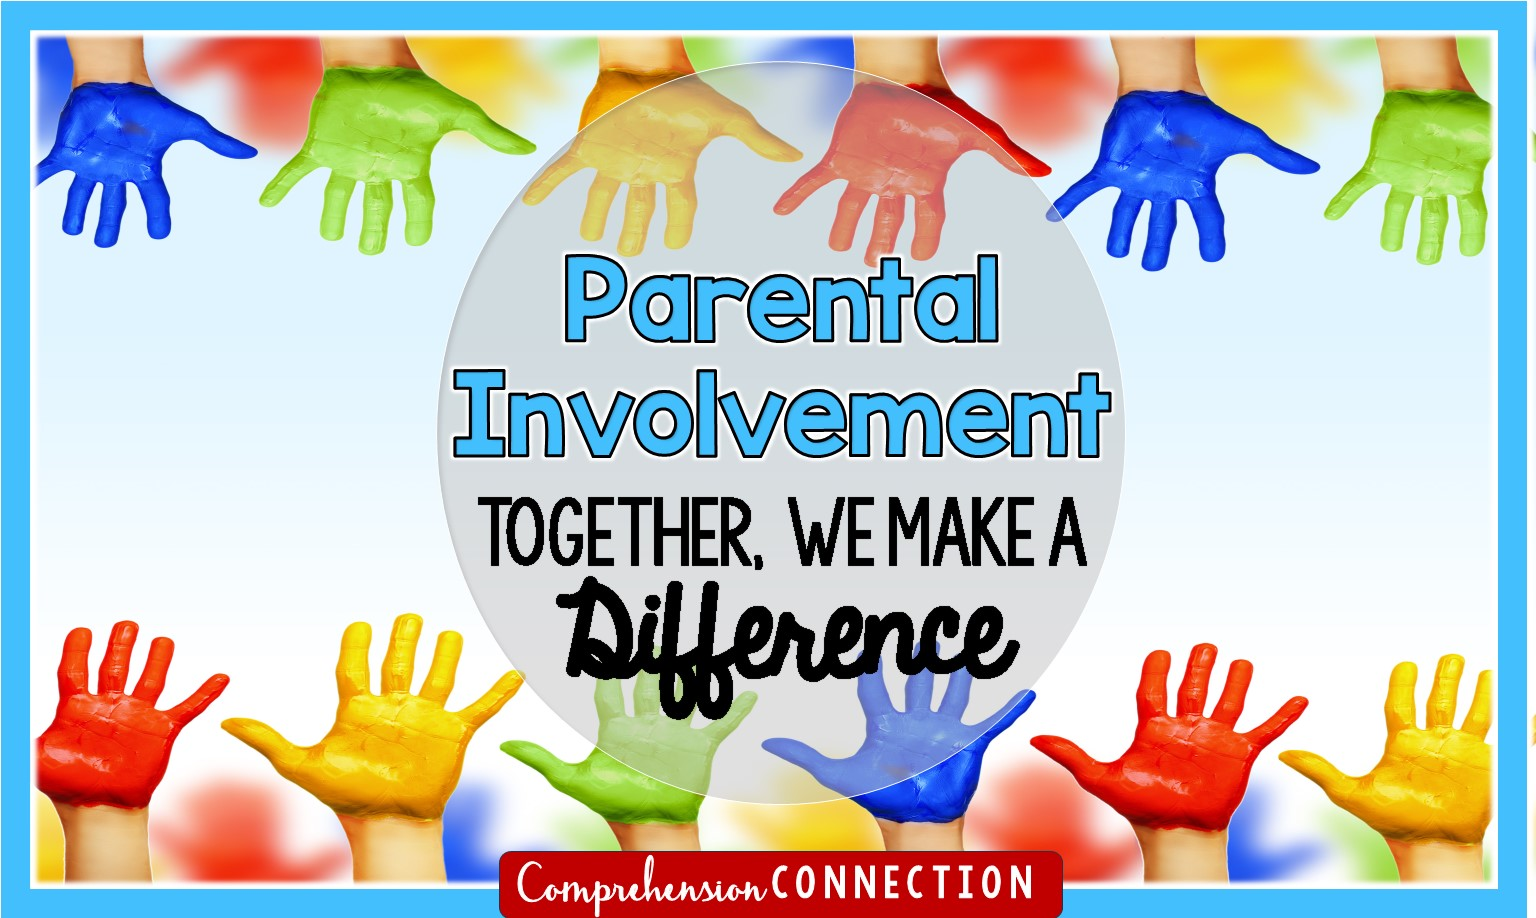 parent involvement Visit us to view the wide array of activities and events that provide opportunities for parent involvement to embellish our daycare experience.